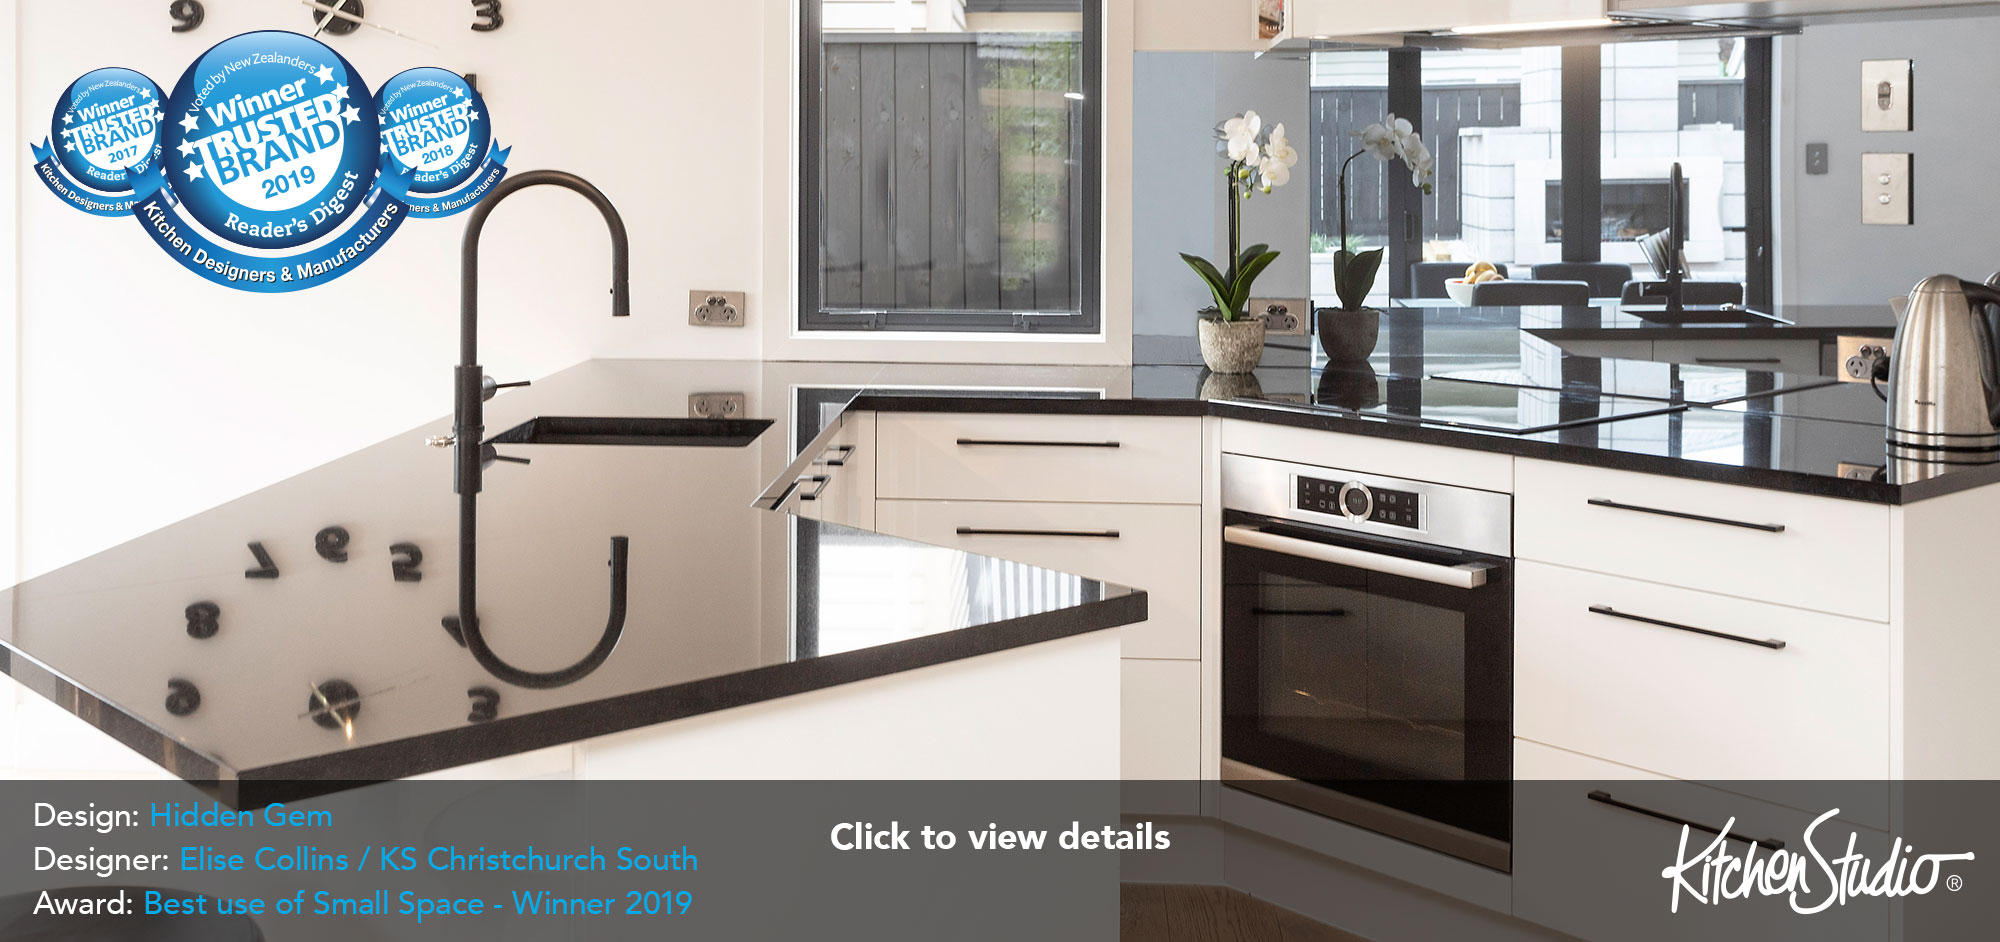 Kitchen Studio The Most Trusted Kitchen Brand In New Zealand